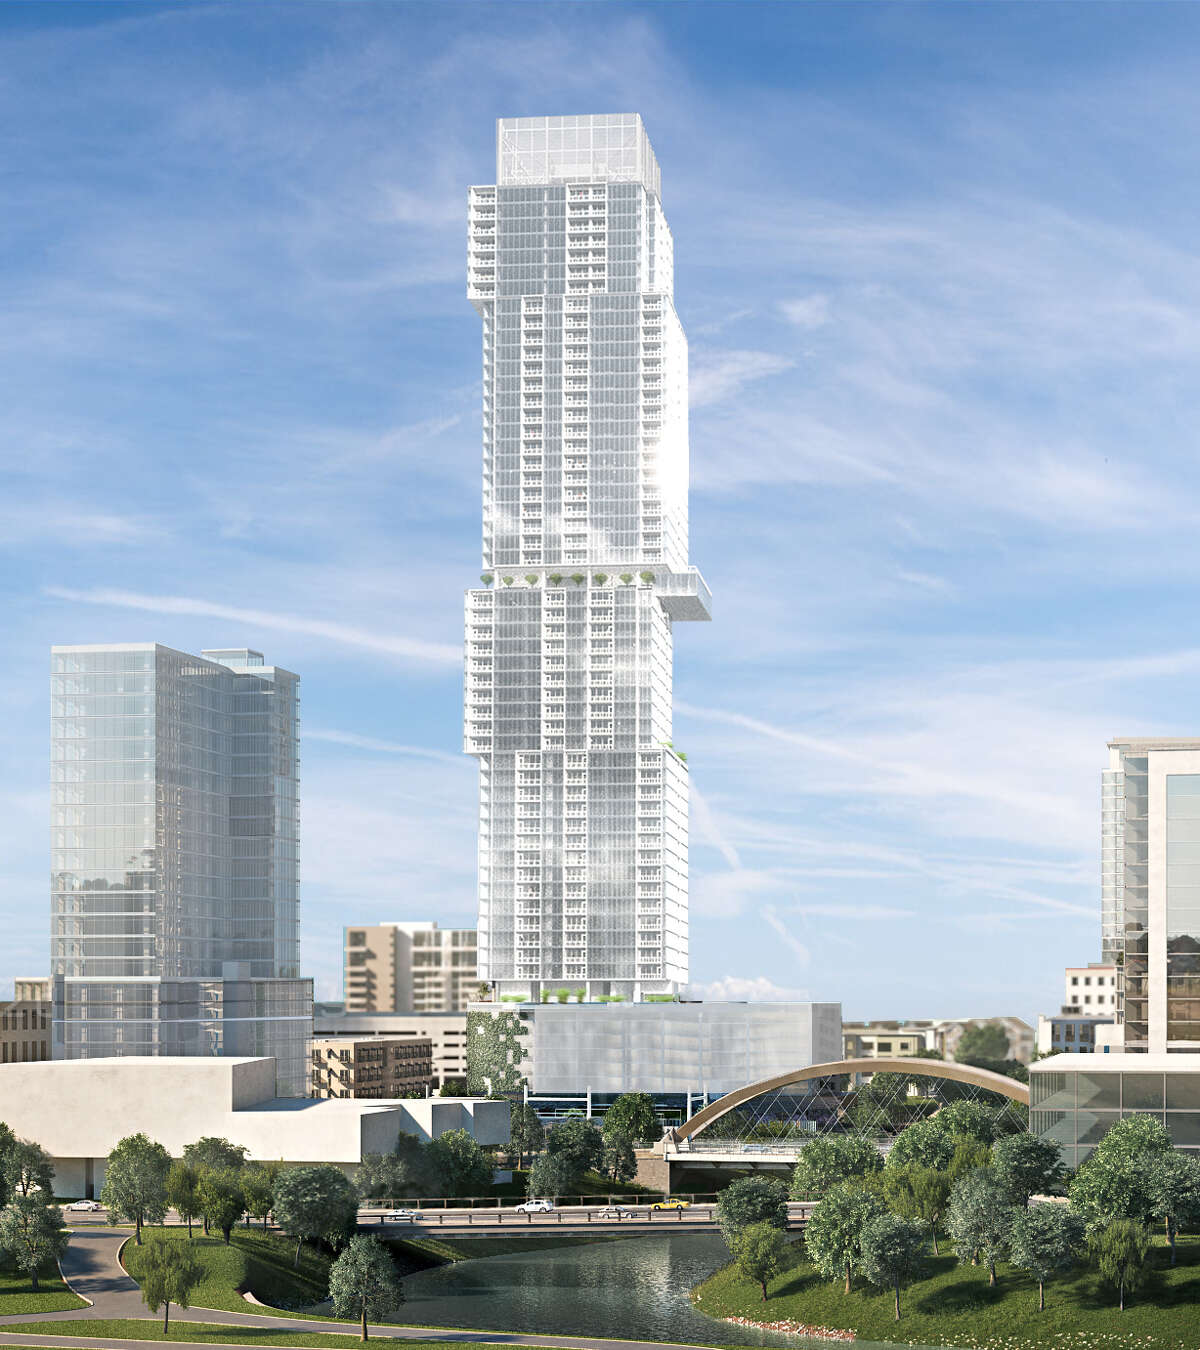 The rendering shows the Independent is designed to look like in downtown Austin.